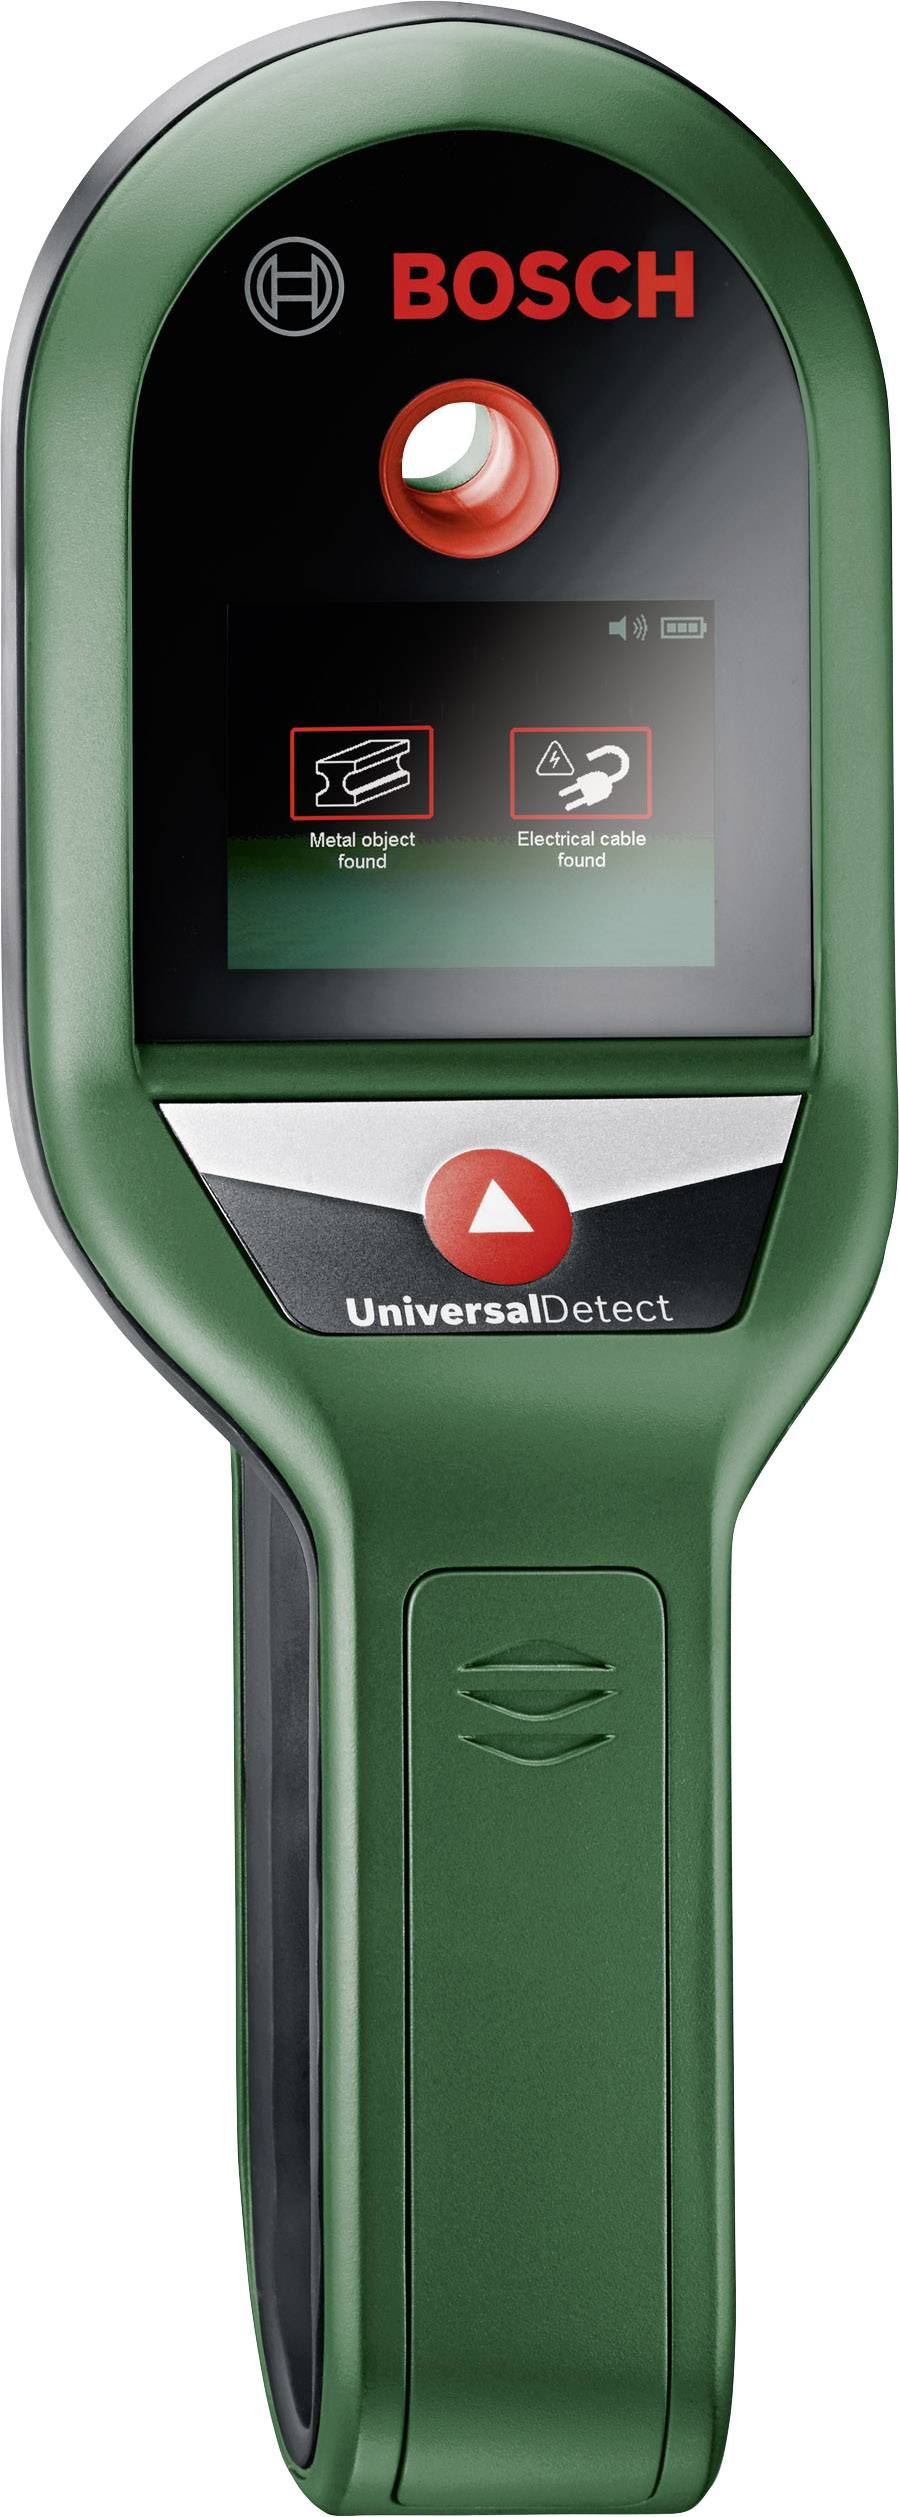 Bosch Home and Garden UniversalDetect 0603681300